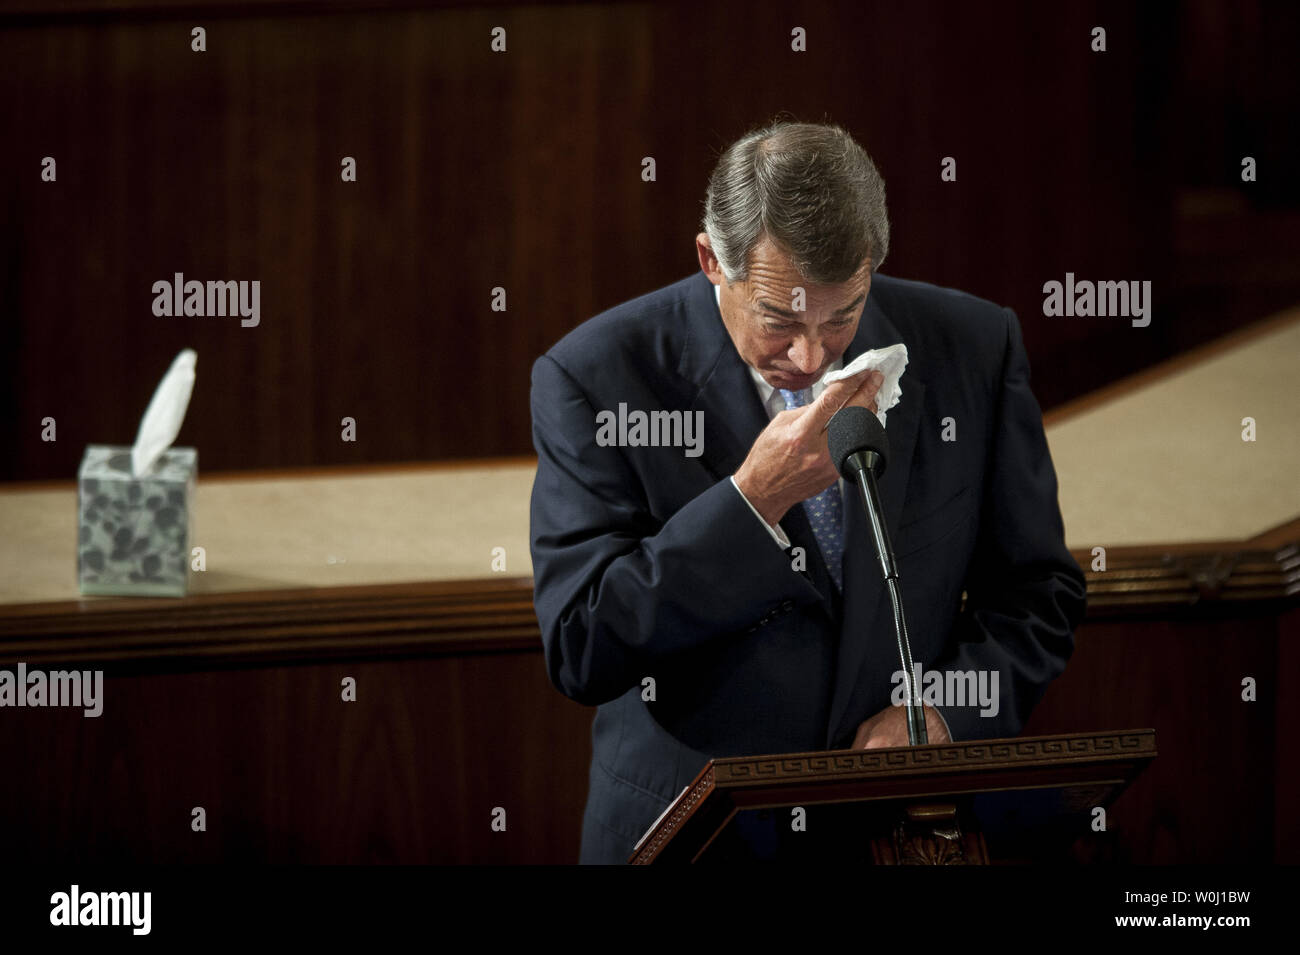 The day before he is to retire from Congress, Speaker of the House John Boehner (R-OH) becomes emotional as he delivers his farewell address to the House of Representatives on October 29, 2015 in Washington, D.C. Following his address, the House of Representatives will vote on Boehner's replacement for Speaker. Photo by Pete Marovich/UPI - Stock Image